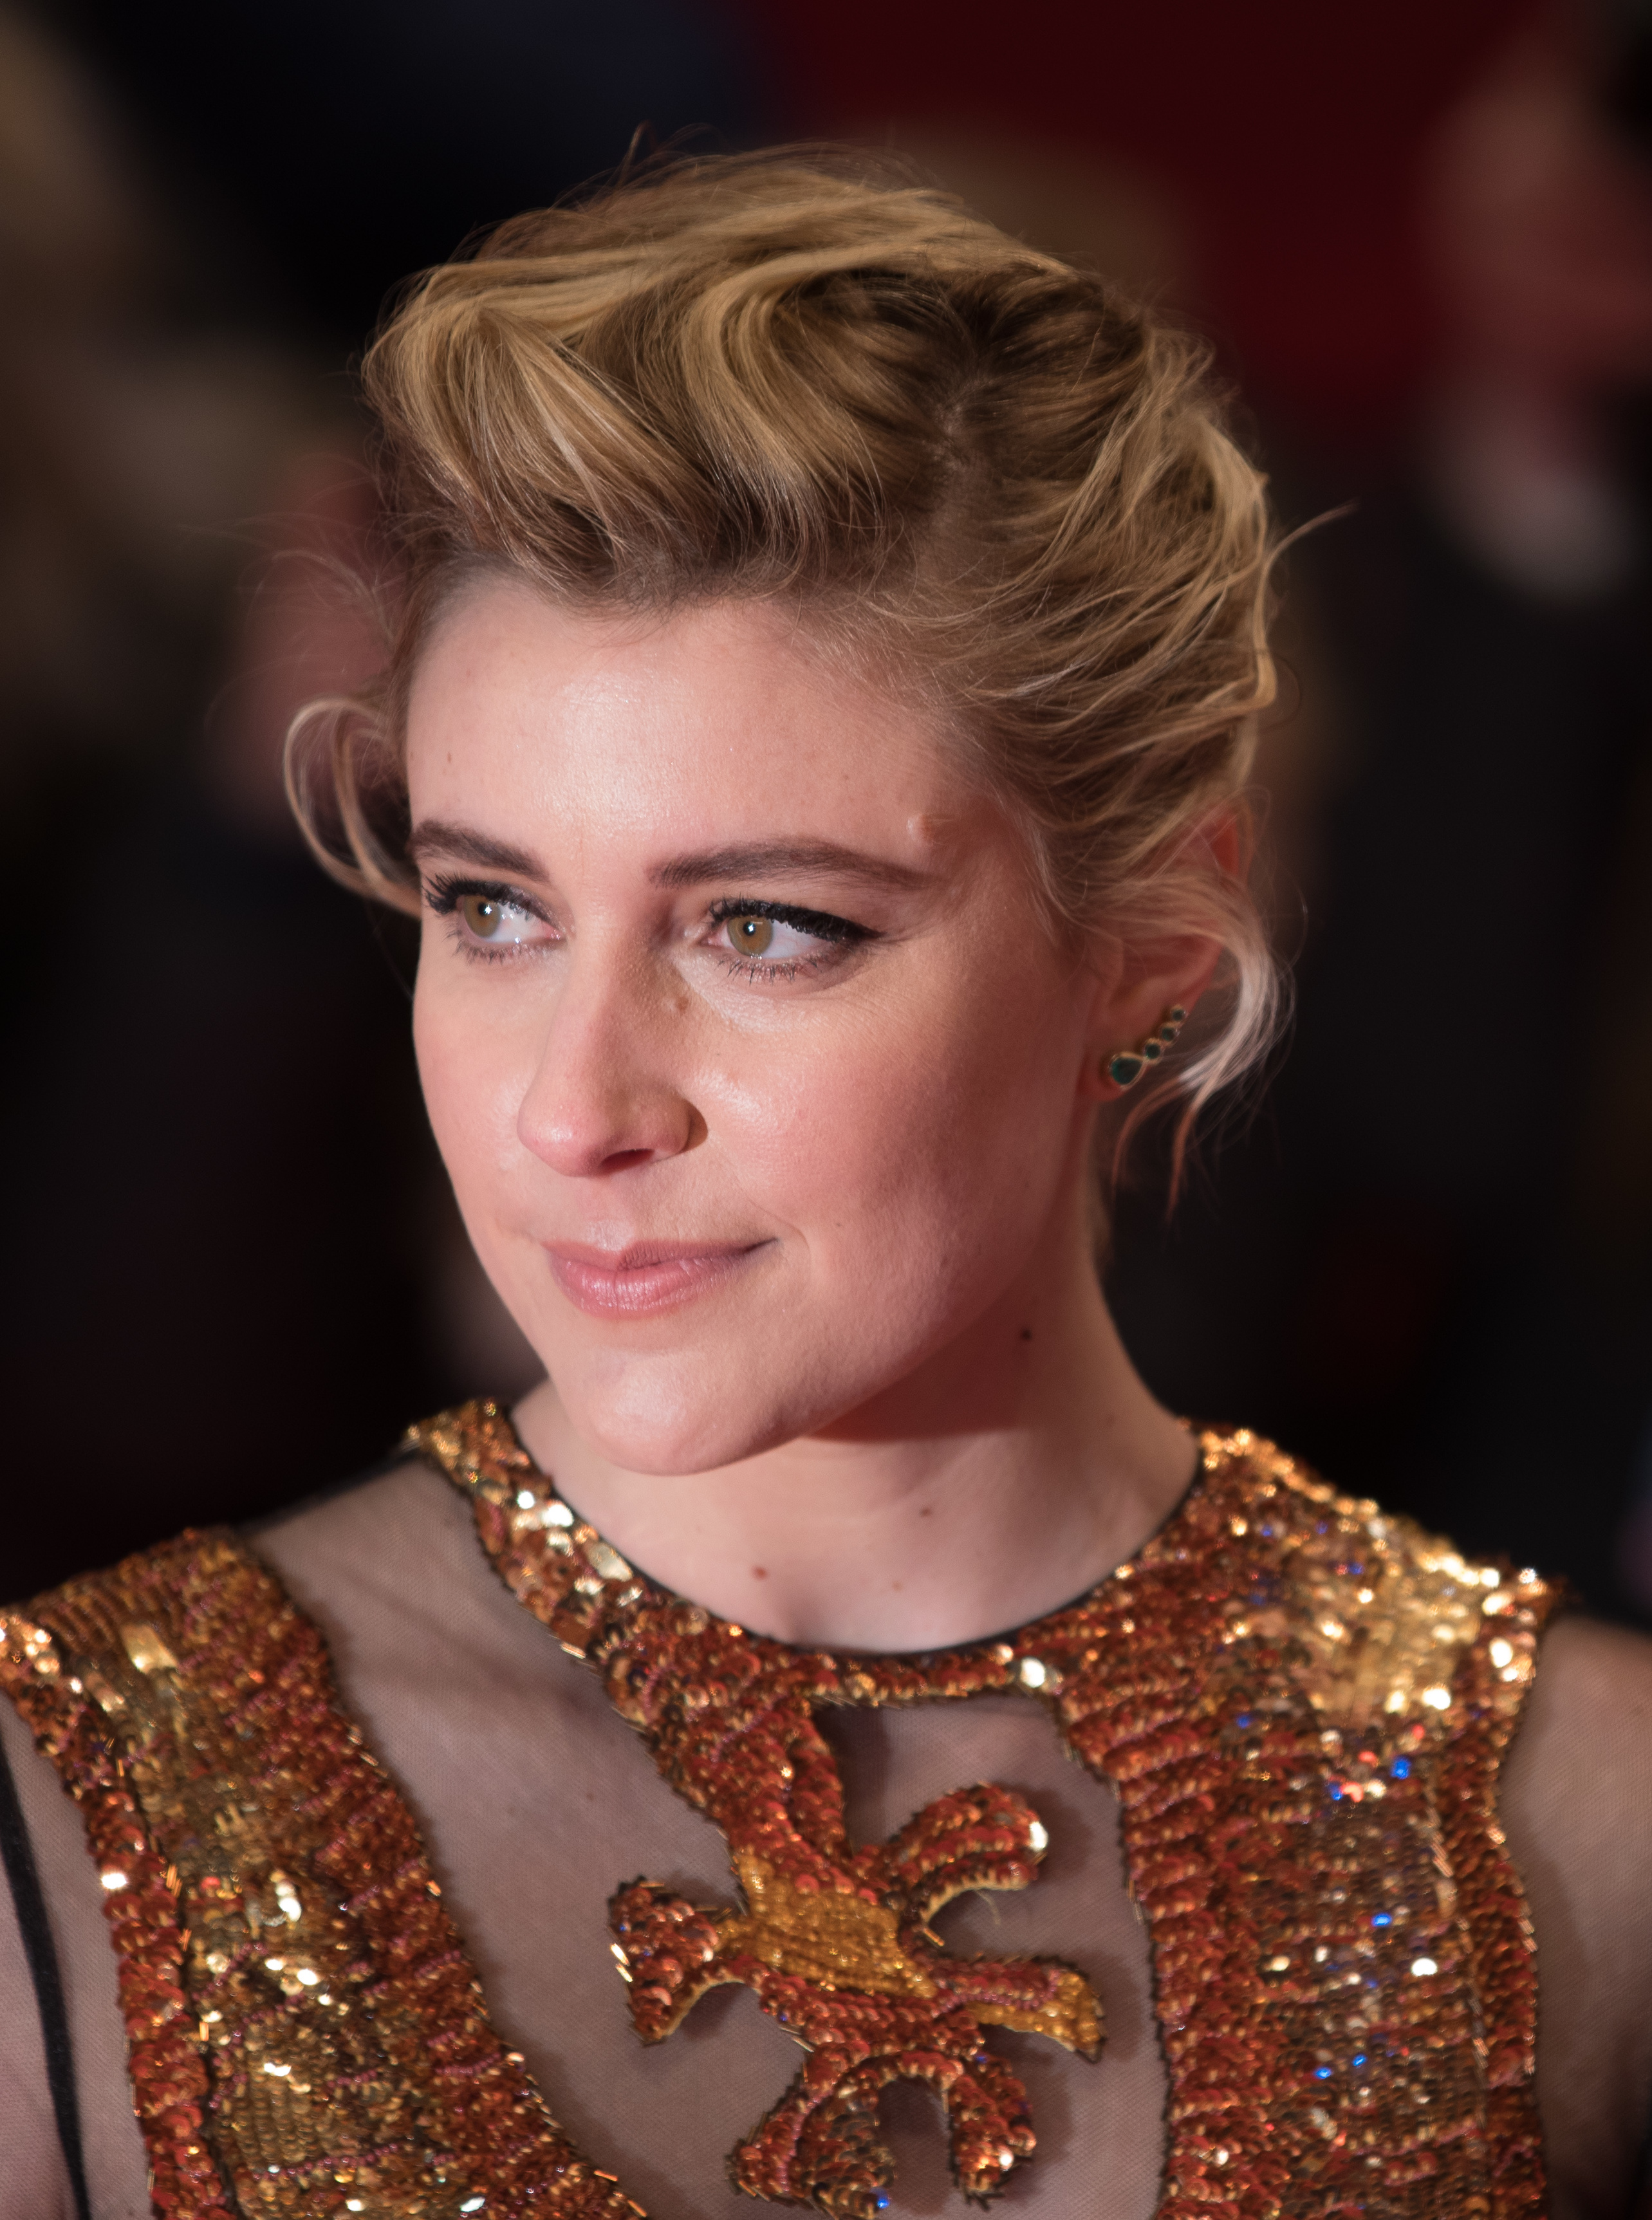 The 37-year old daughter of father Gordon Gerwig and mother Christine Gerwig Greta Gerwig in 2020 photo. Greta Gerwig earned a million dollar salary - leaving the net worth at 2 million in 2020